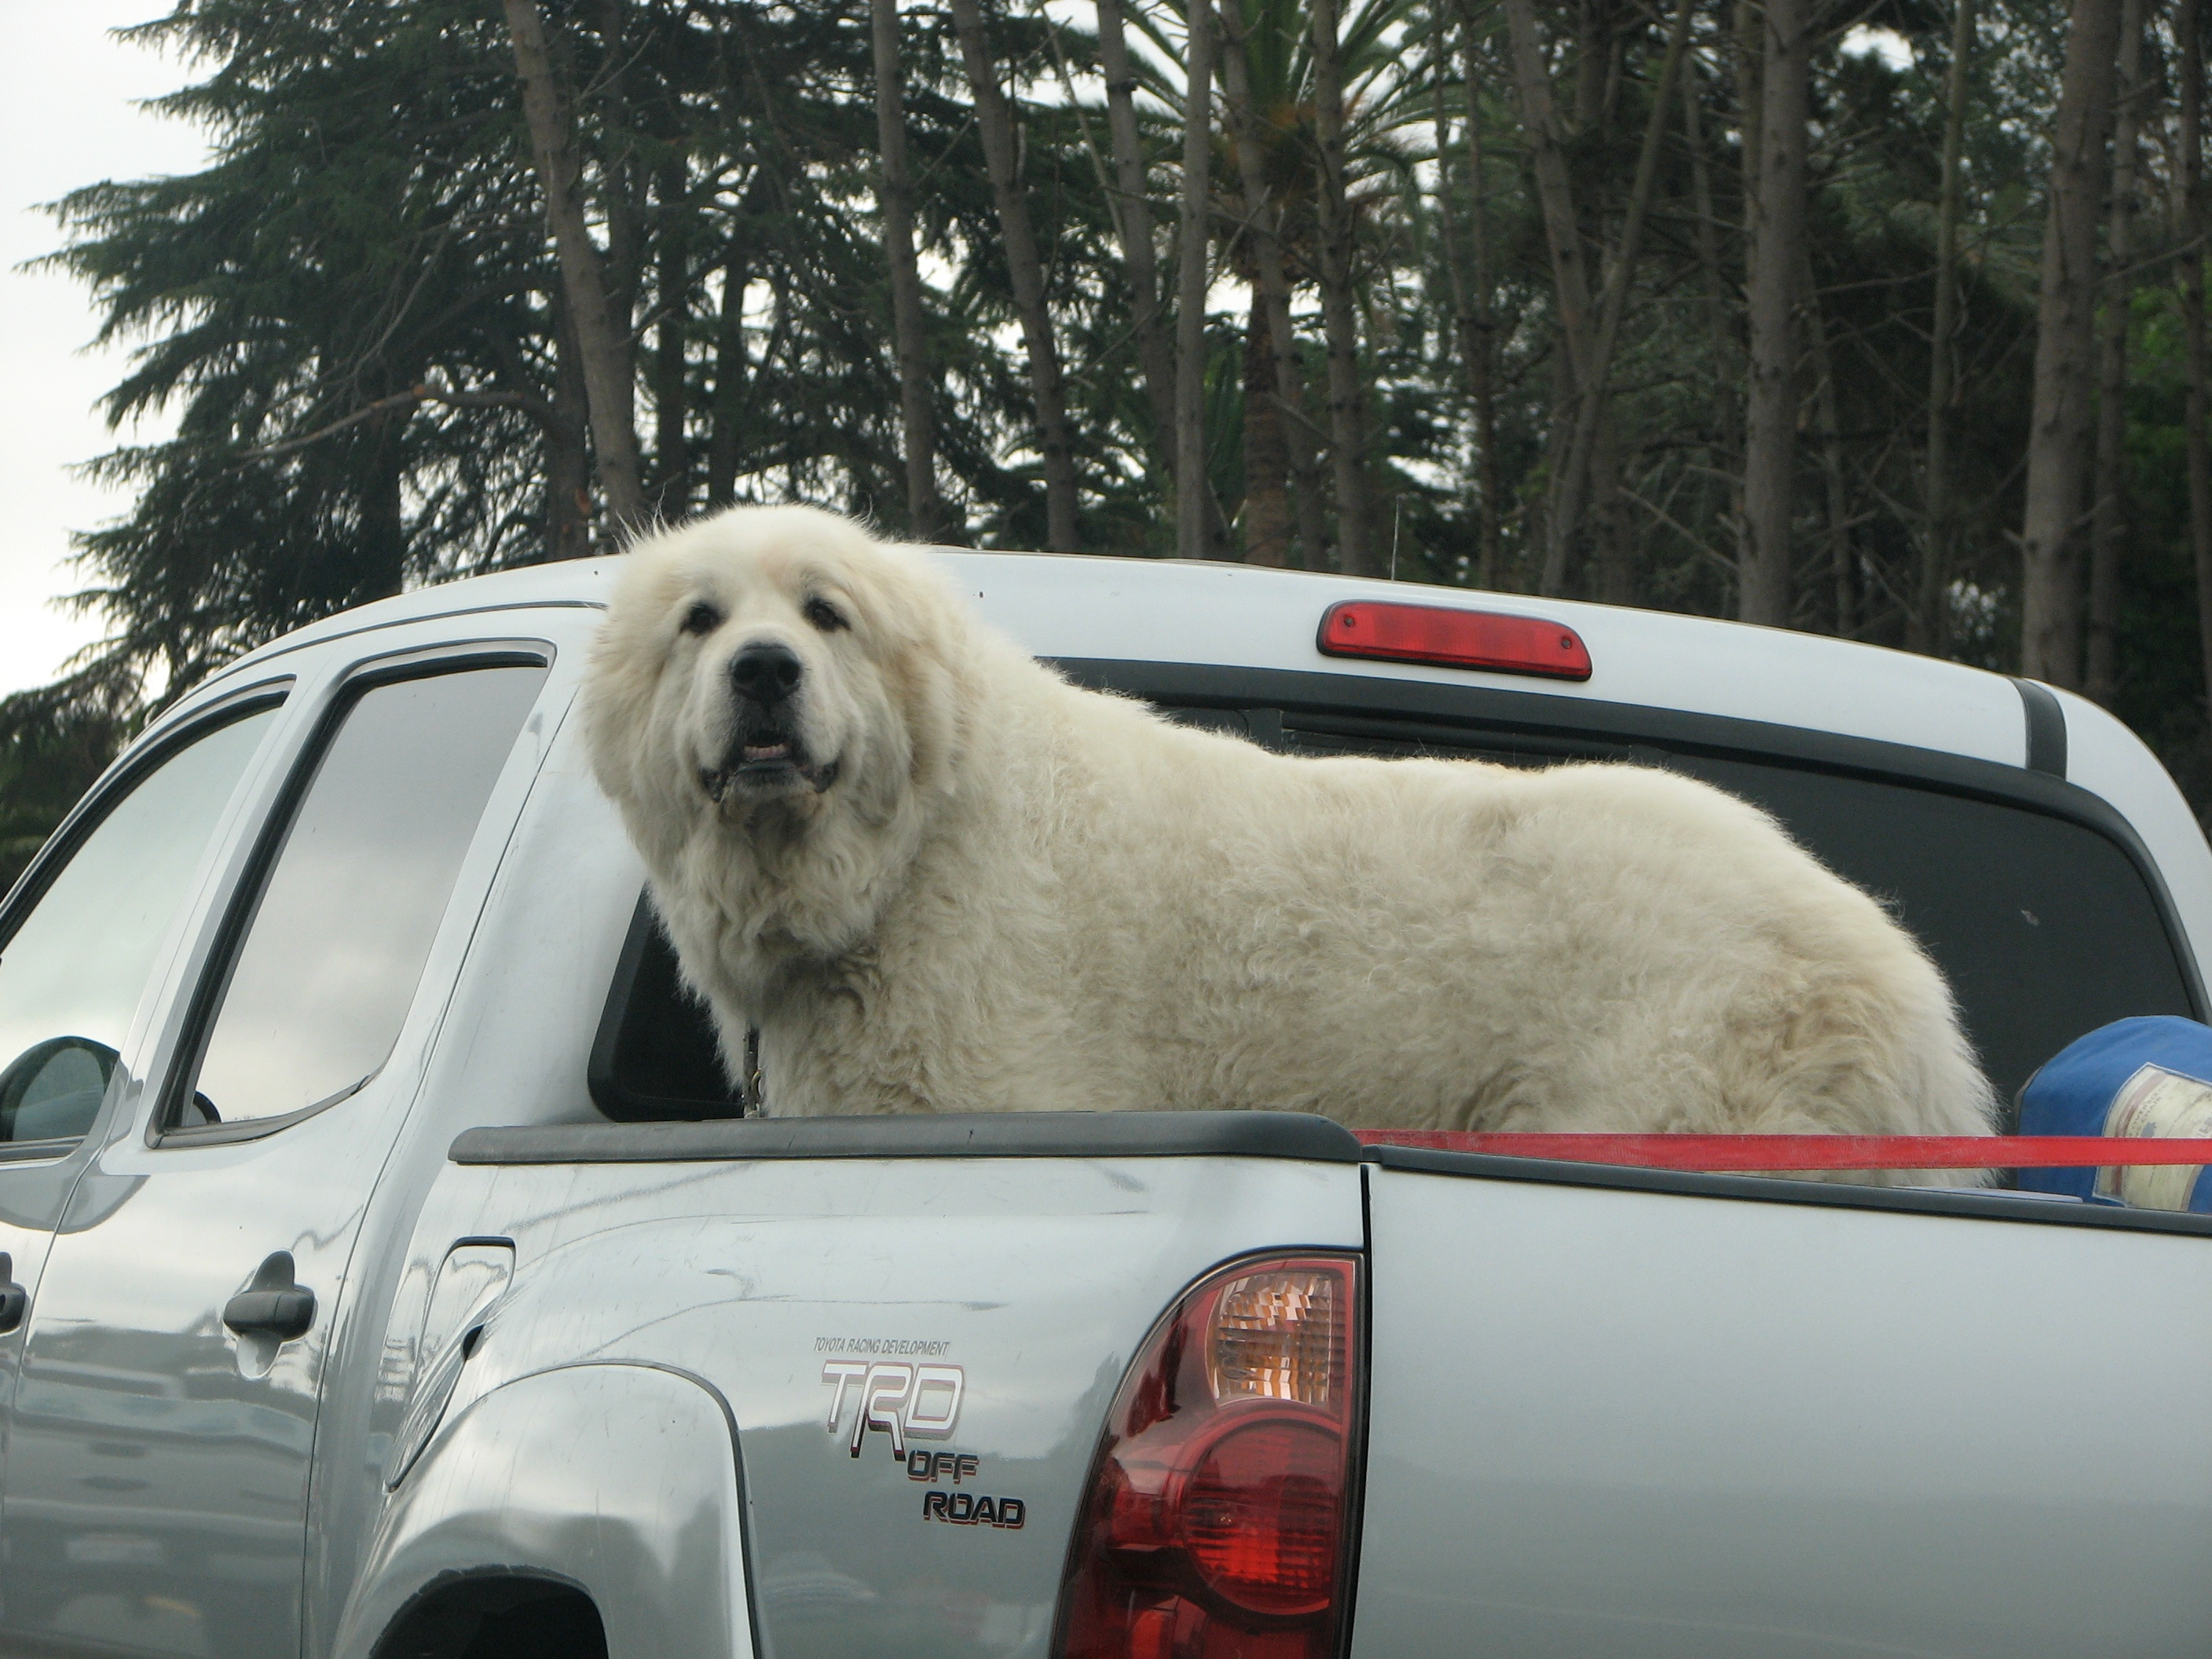 truck load of dog author lucke charlie